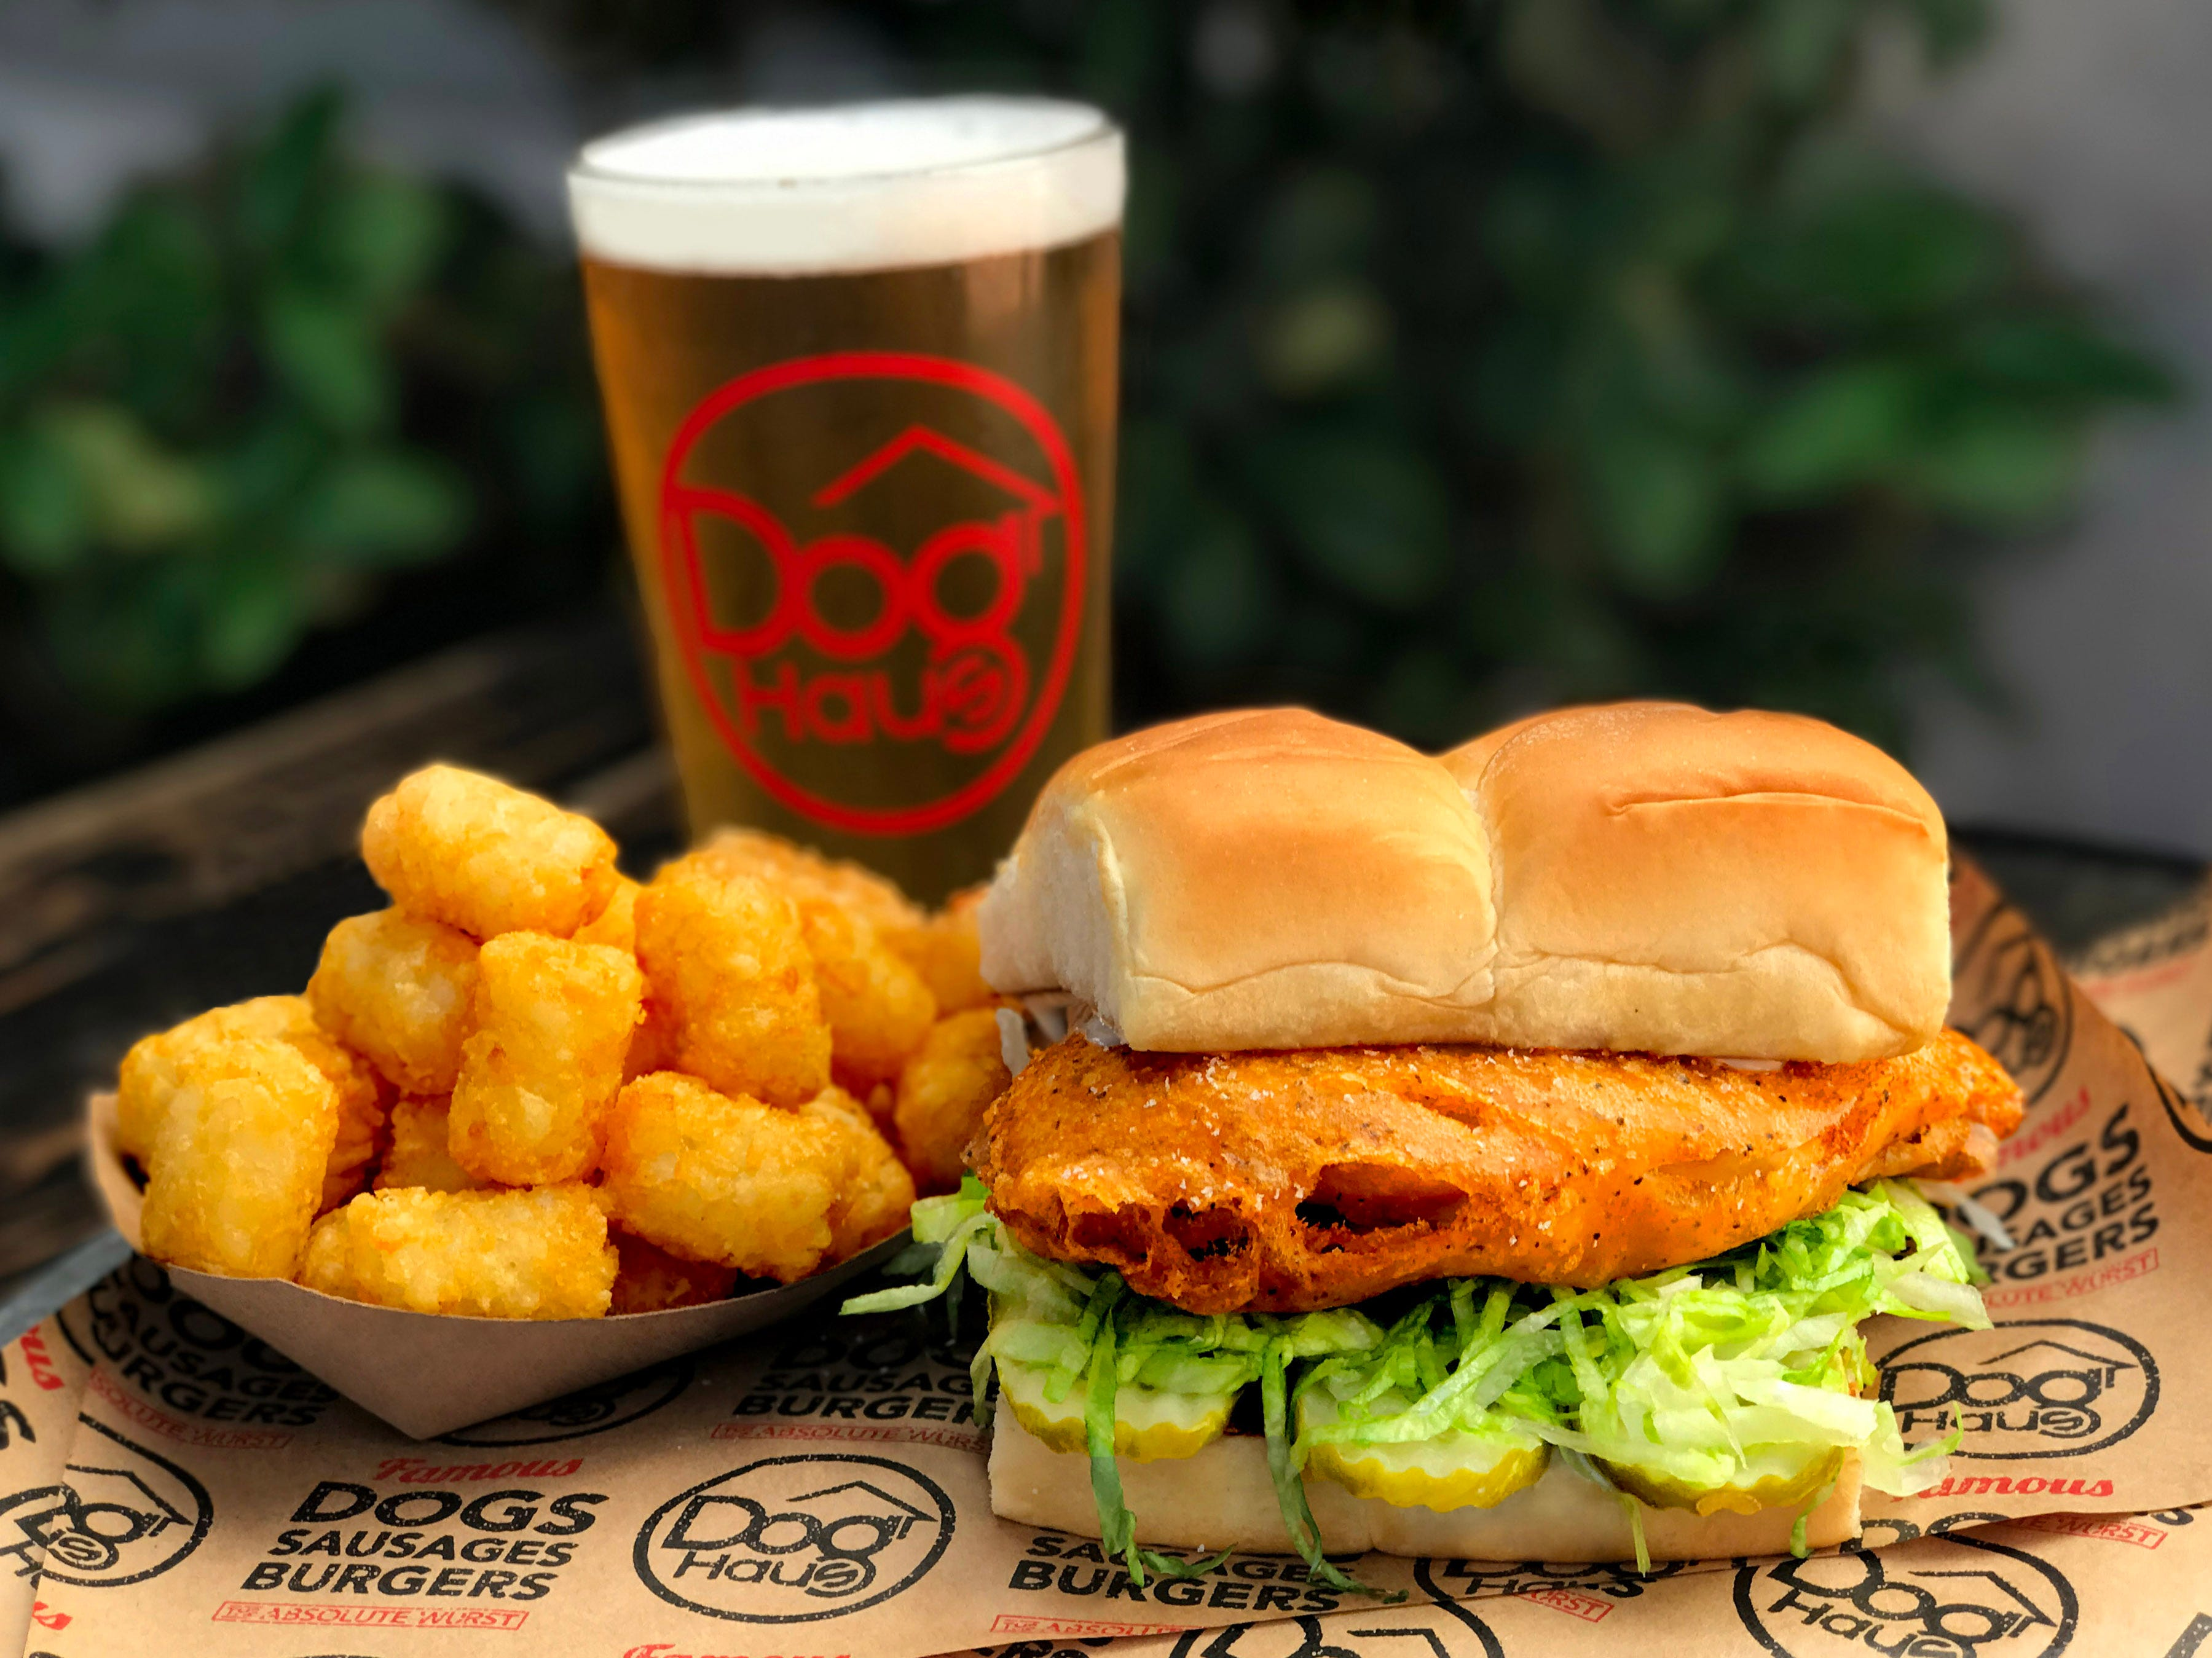 Among Dog Haus' menu items are beer, tater tots and burgers, like the Bad Mutha Clucka, a beer battered chicken breast topped with lettuce, pickles and miso ranch.